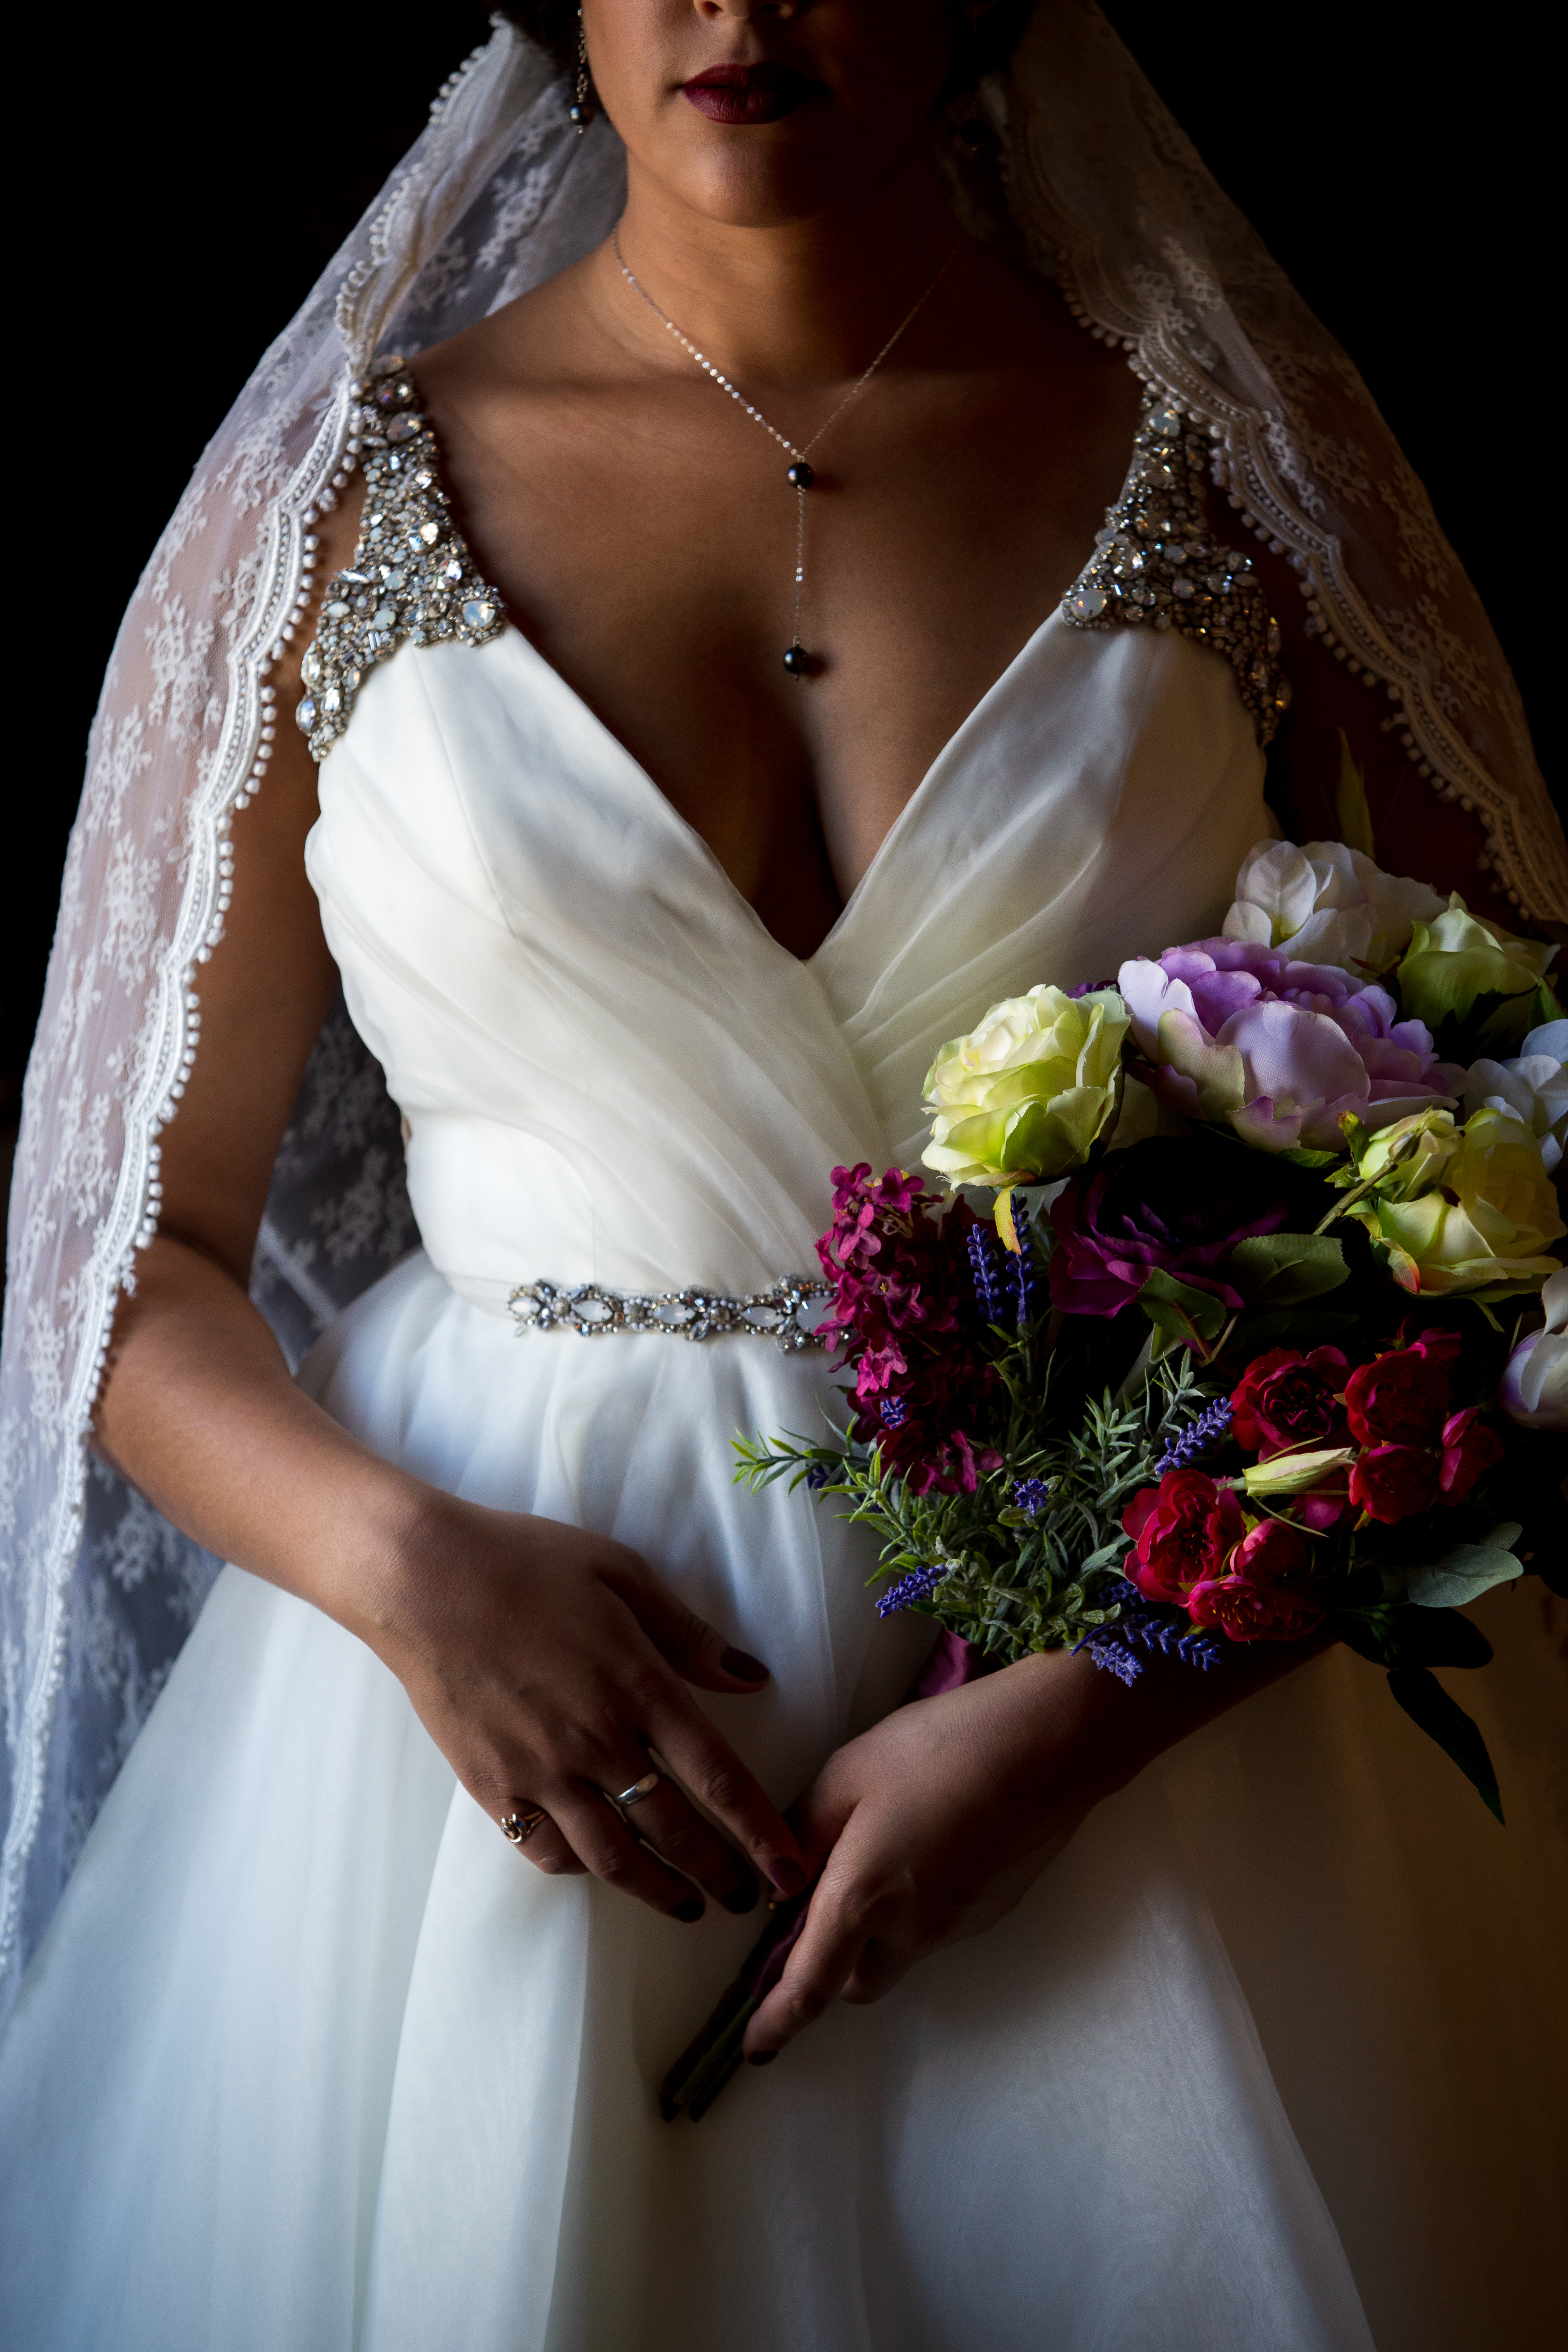 Bride Holding Her Flowers